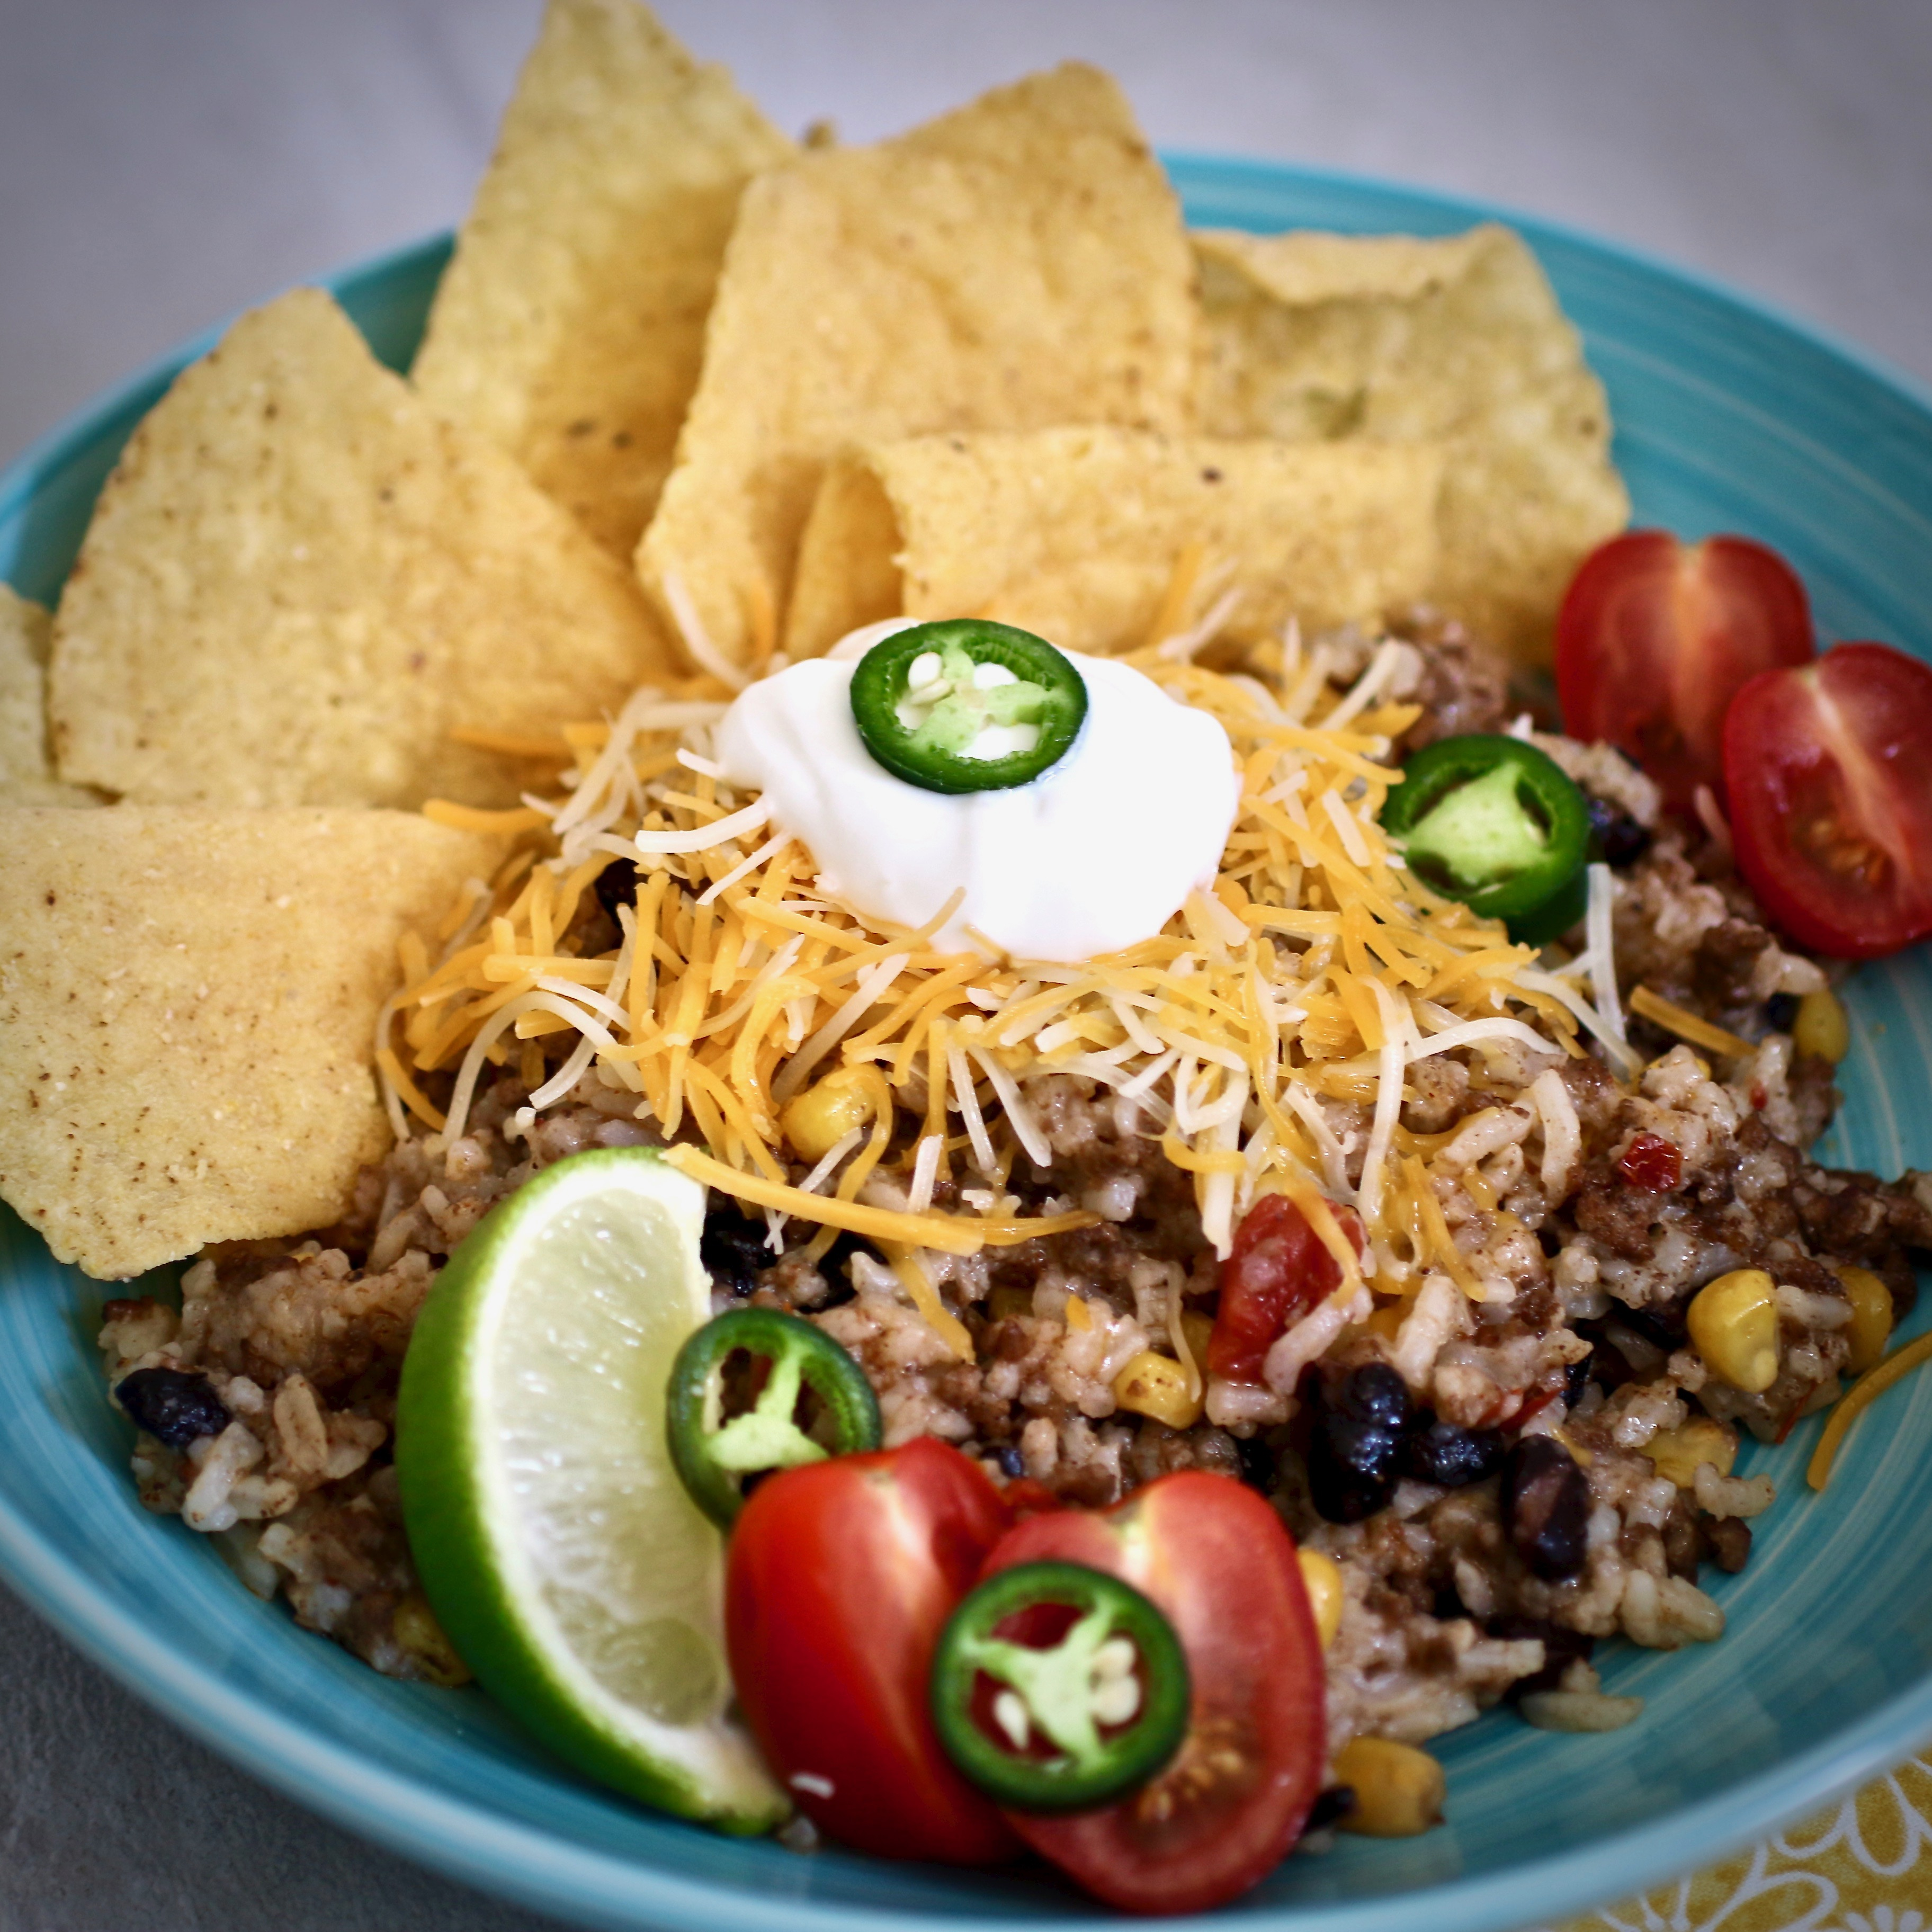 """Another easy Instant Pot recipe! This one features ground beef, black beans, corn, and rice. Top it off with cheese and serve in lettuce wraps. """"Boston lettuce is optional for serving as lettuce wraps,"""" says Cori S."""